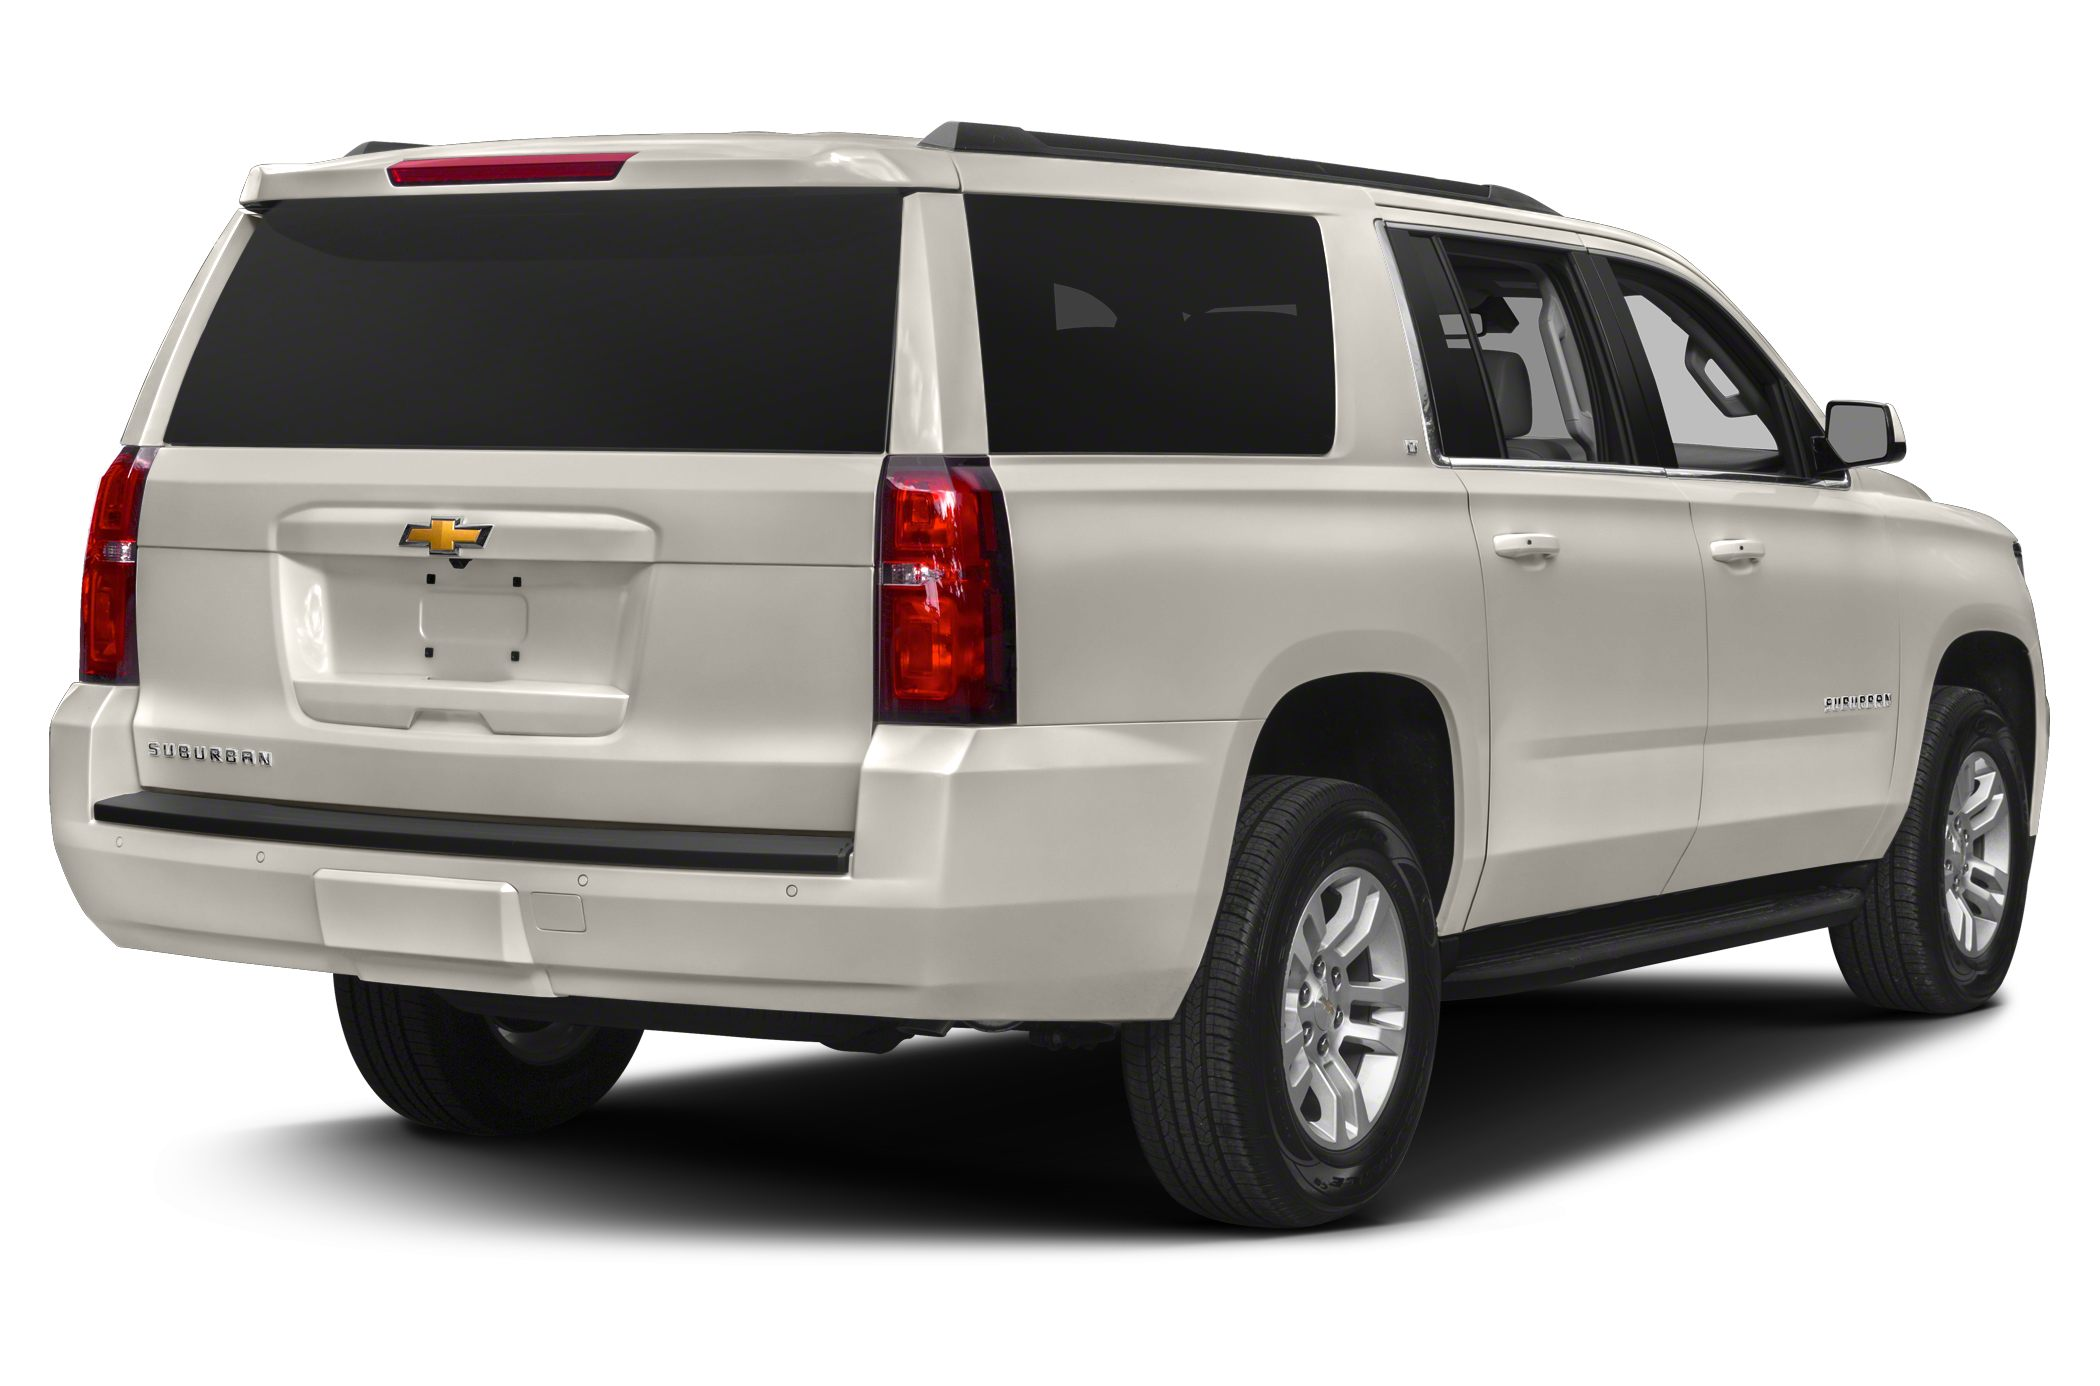 2017 Chevrolet Suburban LT 3-DAY EXCHANGEONE PRICE STOP NO HASSLE NO HAGGLE CAR BUYING EXPE